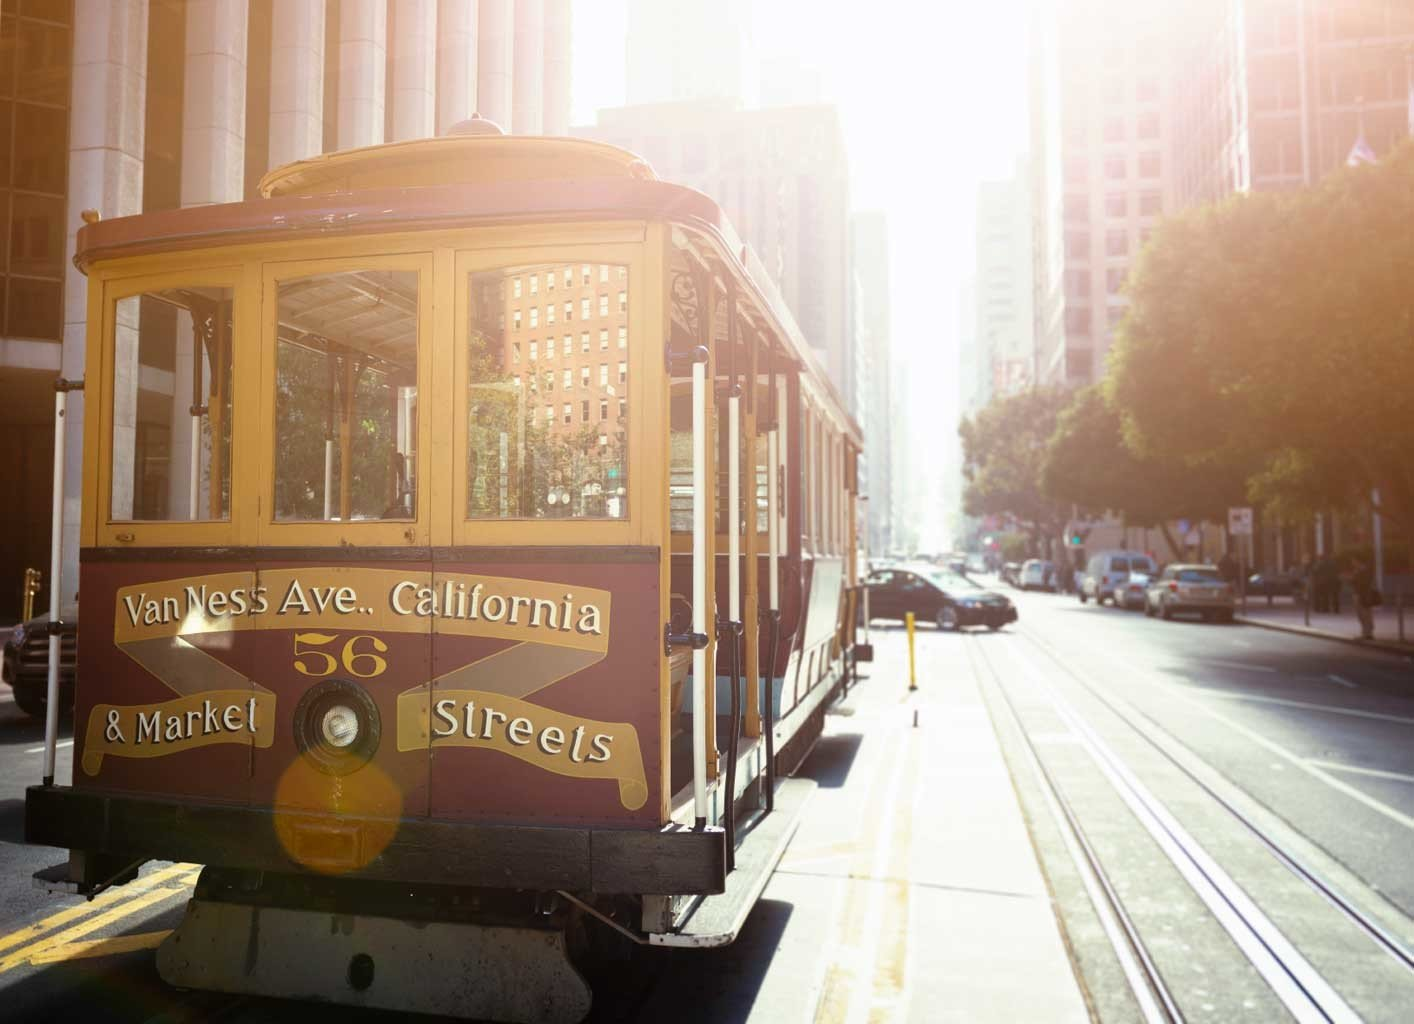 City Outdoor Activities Outdoors vehicle transport land vehicle rolling stock cable car tram public transport train